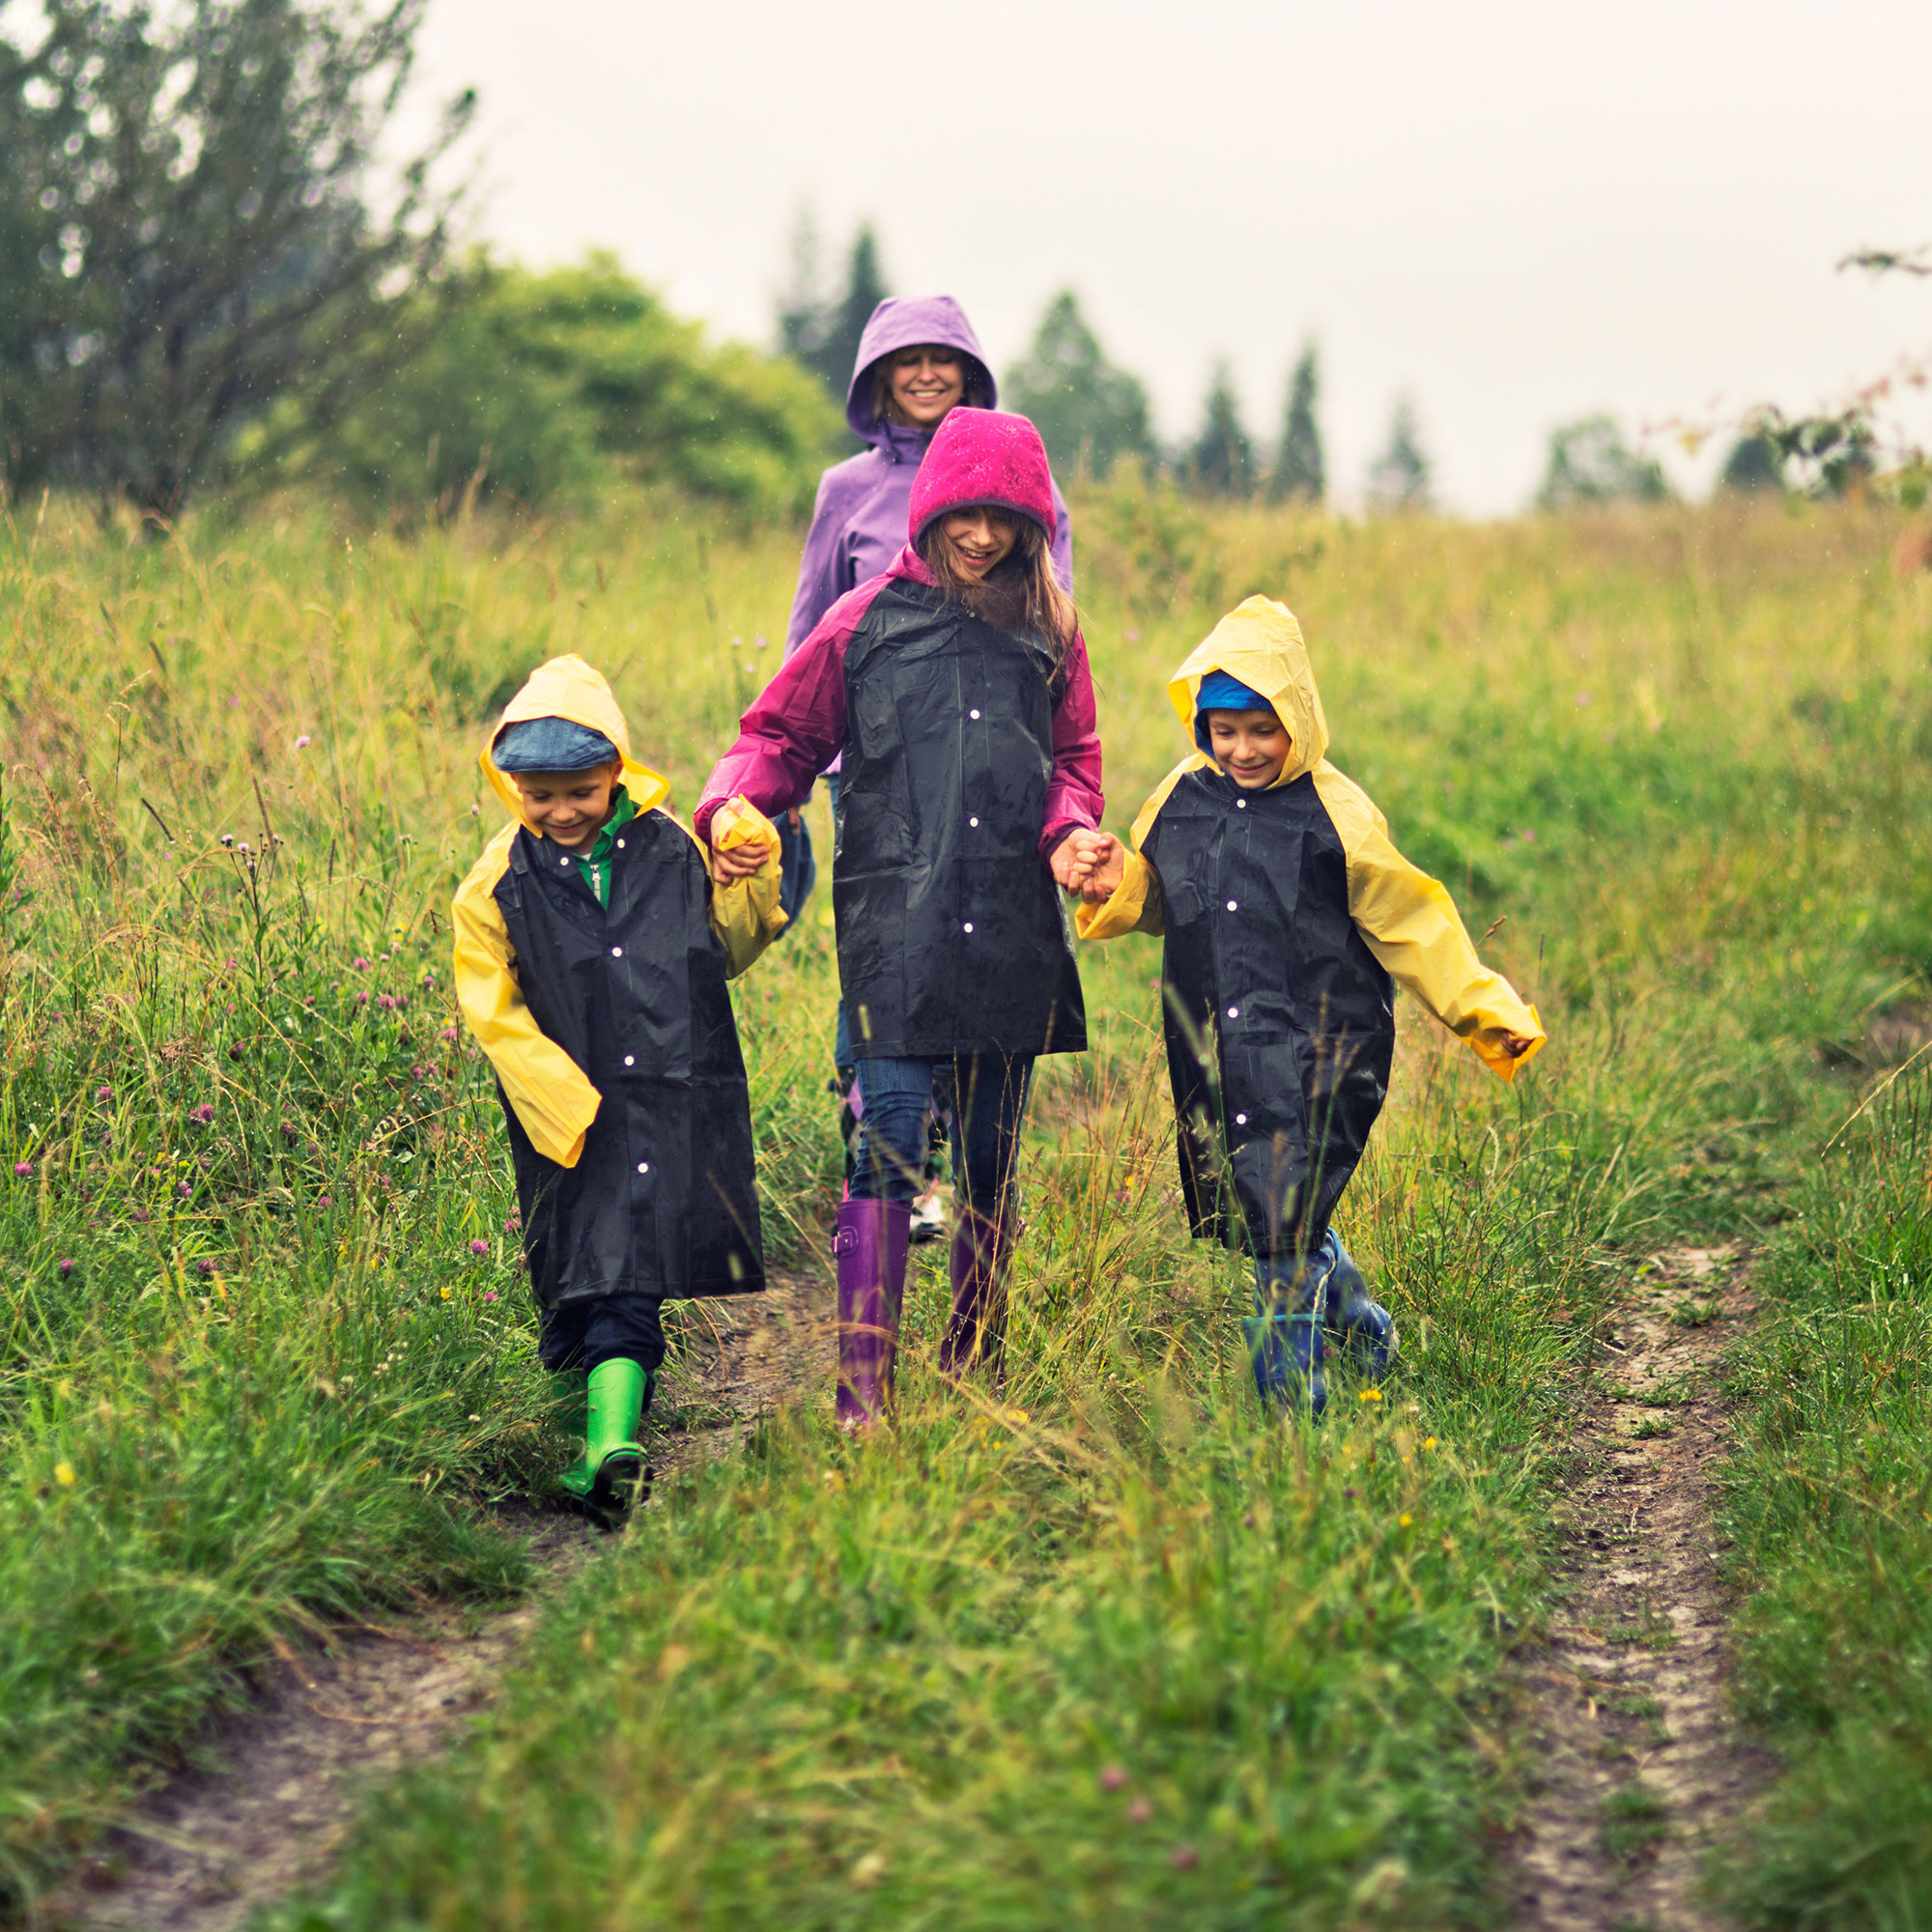 A family outdoors with raincoats on.